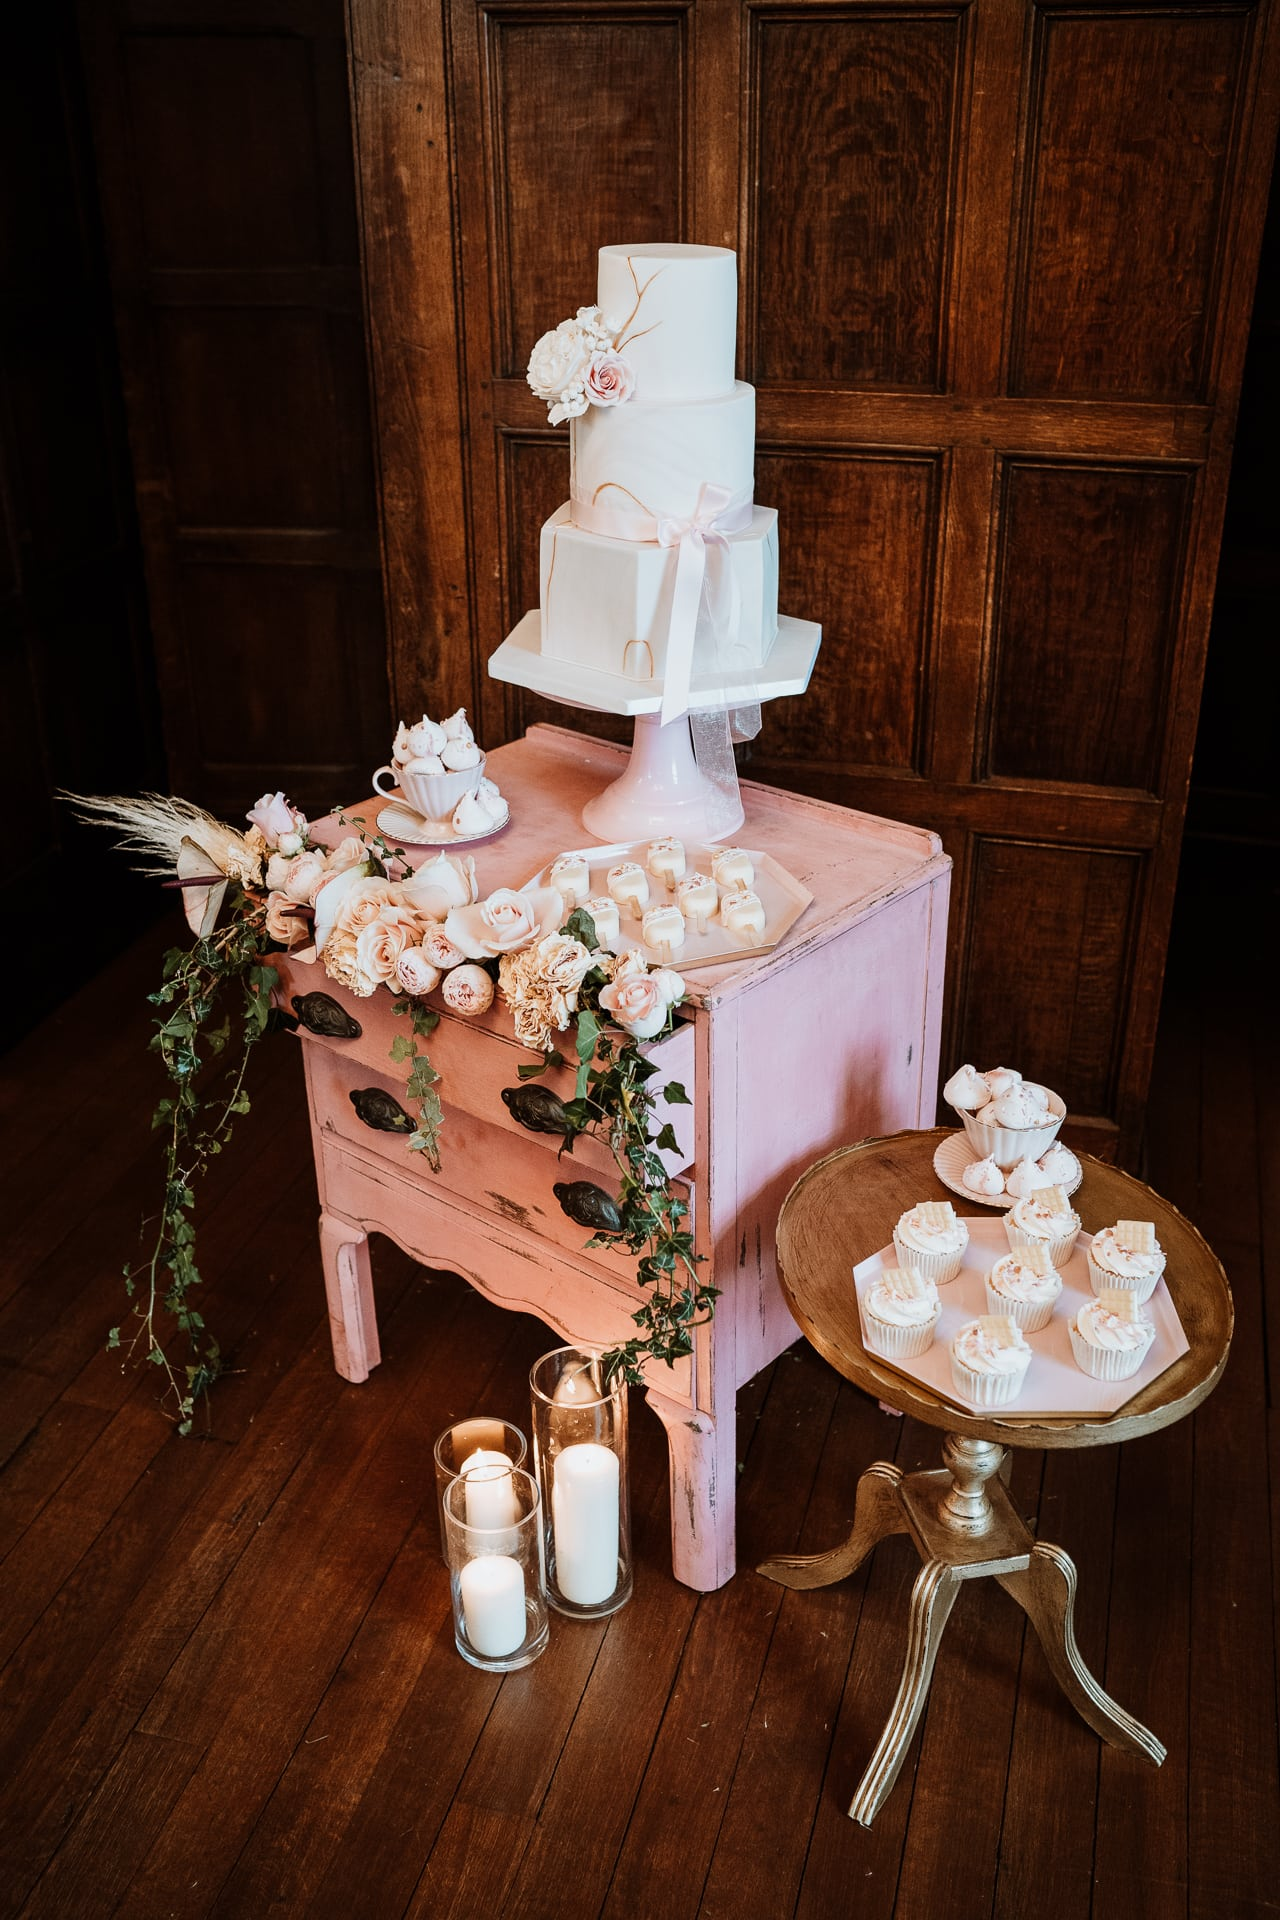 Cream marbled wedding cake and dessert table at Eastwell Manor